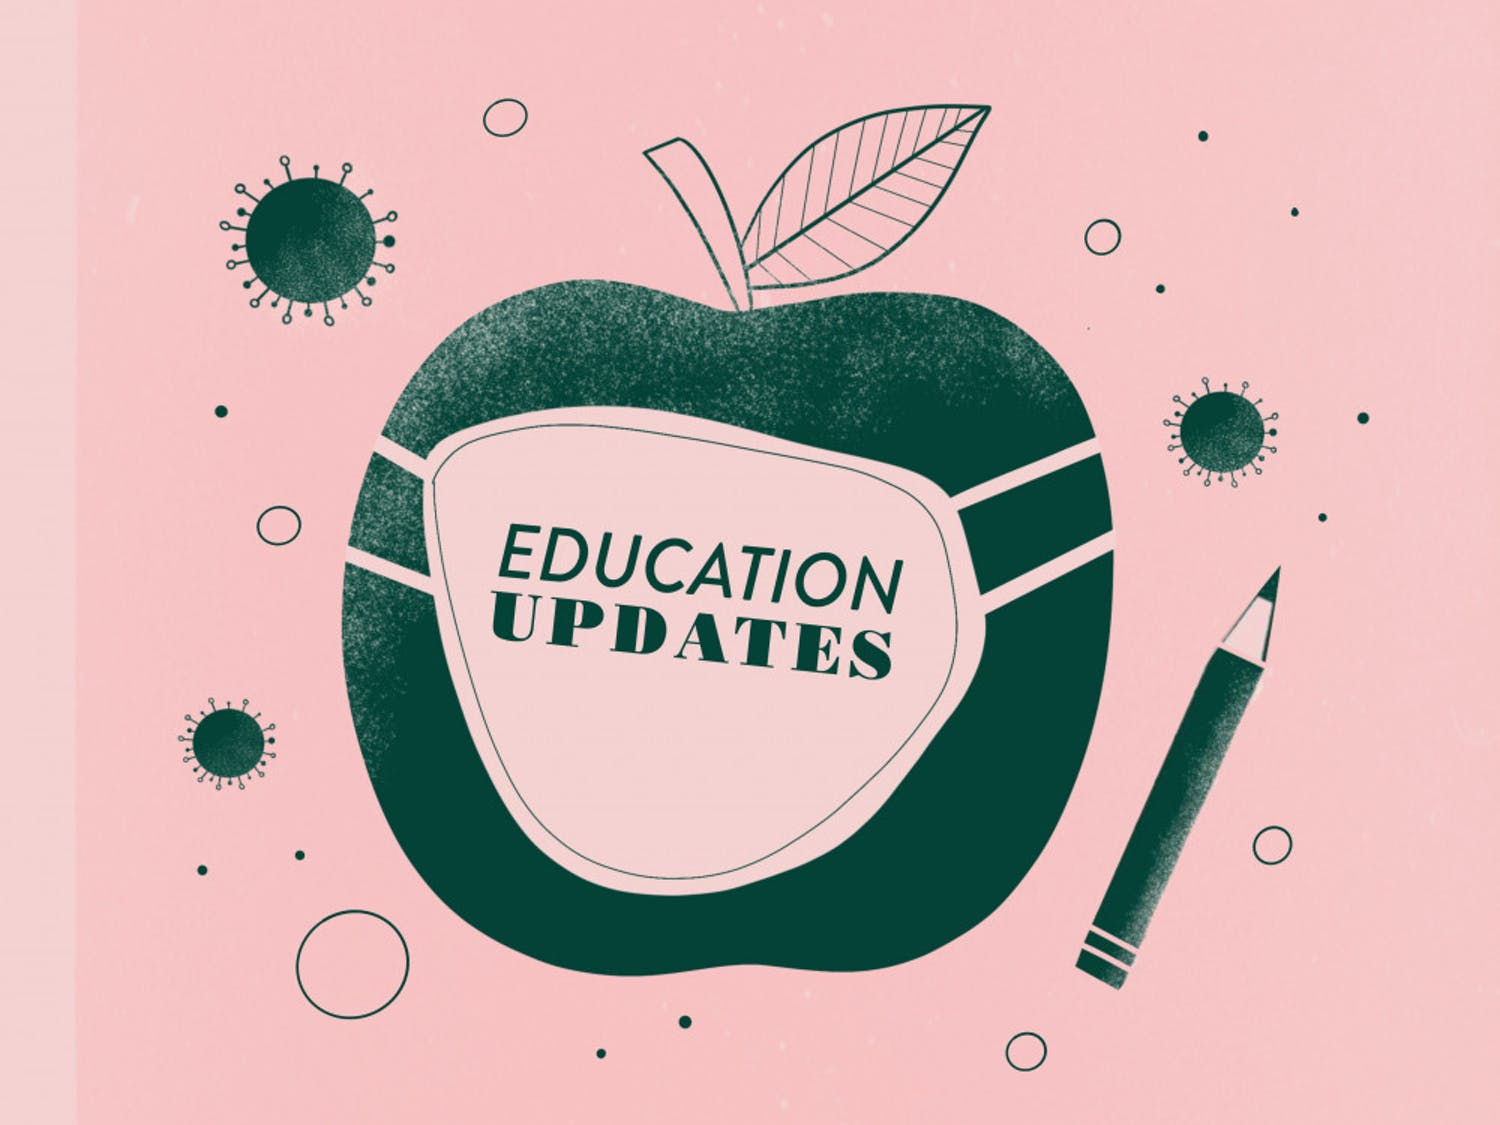 Education updates generic